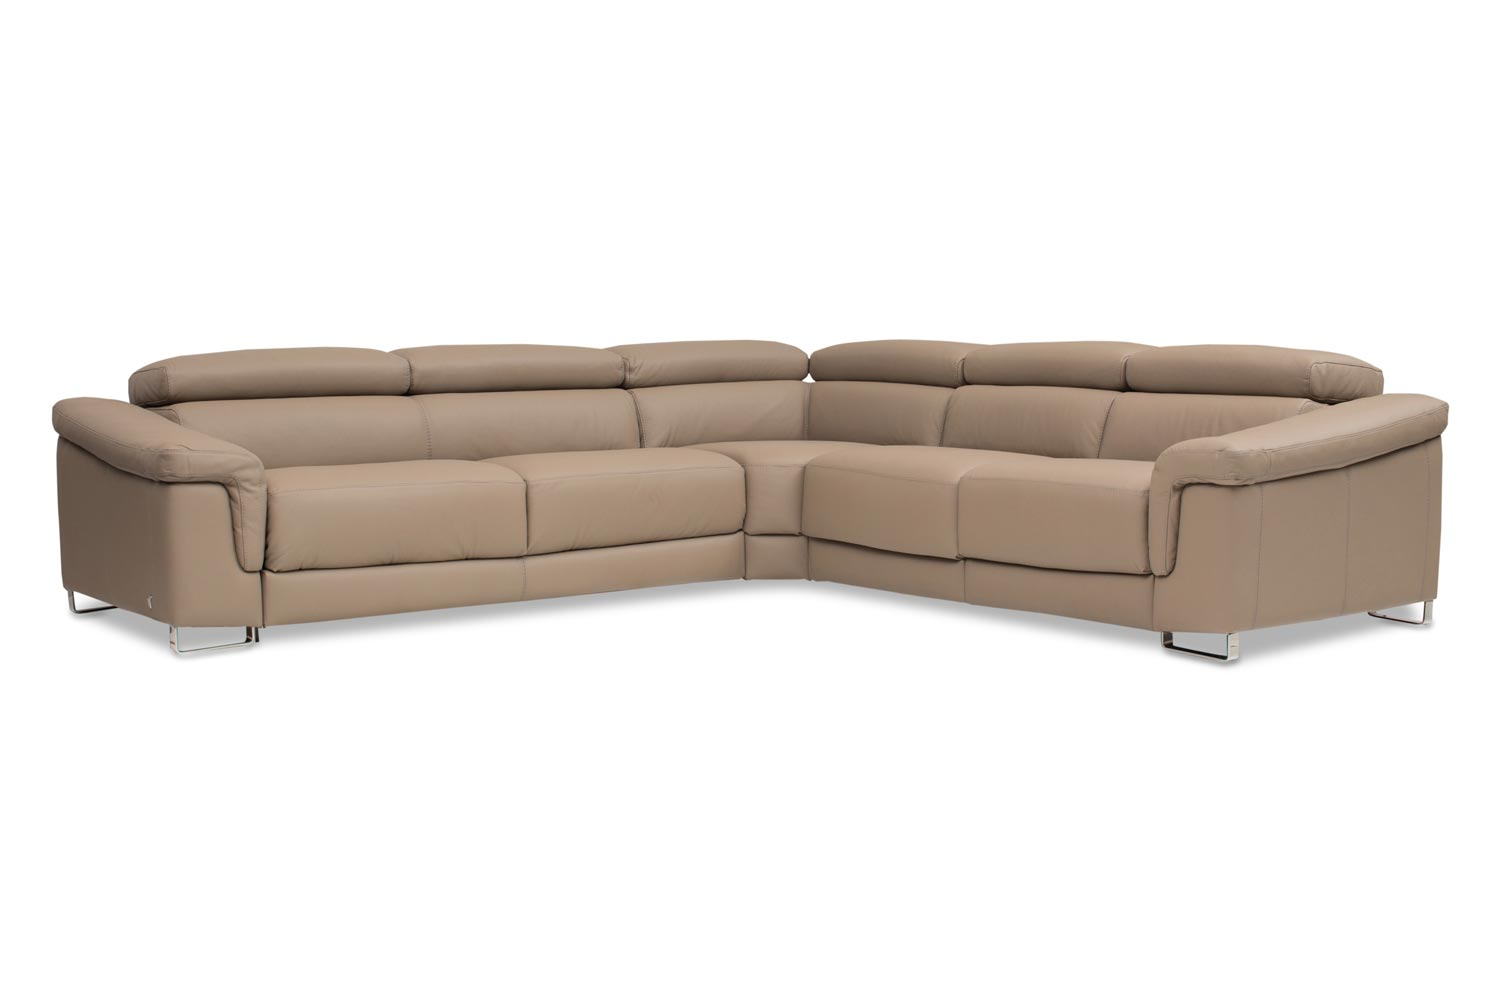 chair beds for adults high seat sofas and chairs sofa harvey norman ireland camilion corner